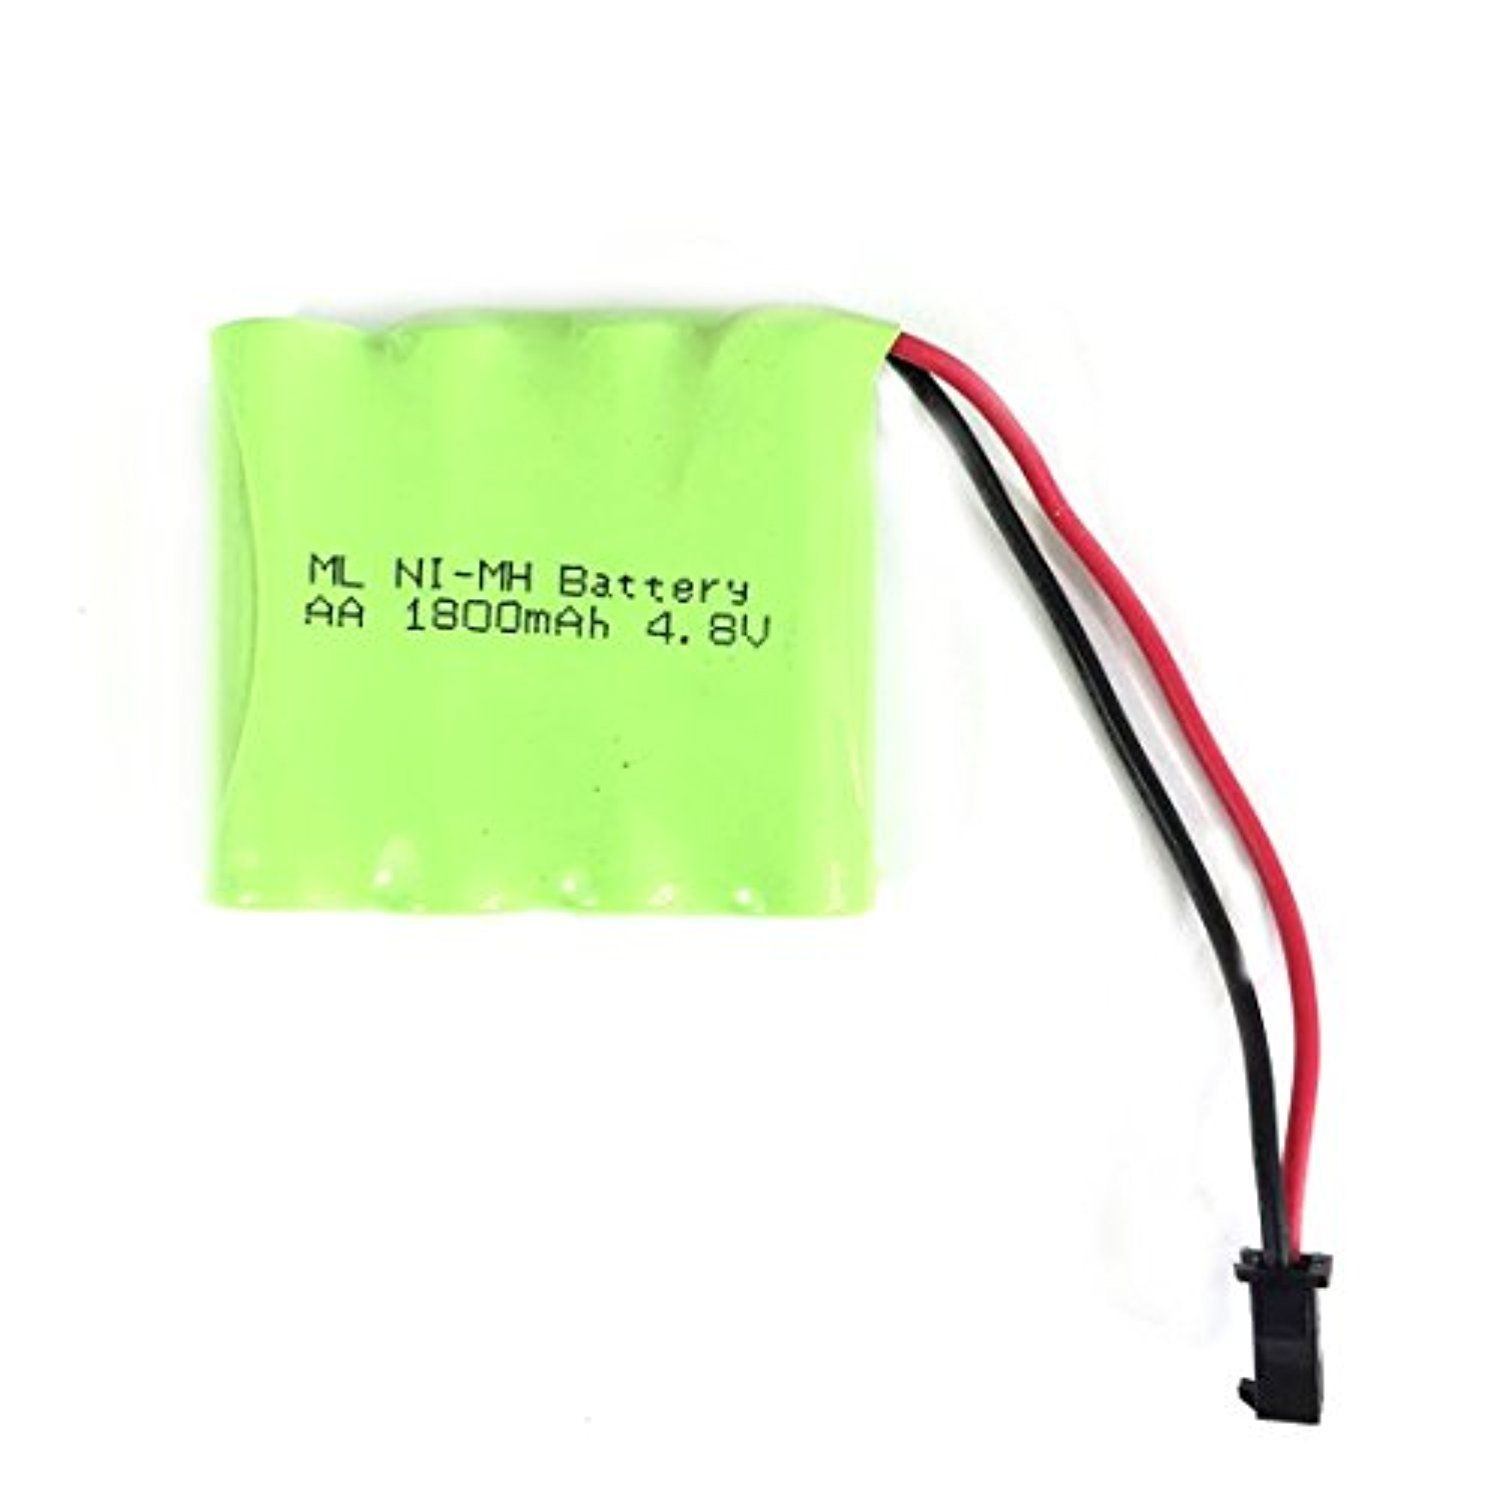 Saige 4 8v 1800mah 4x Aa Ni Mh Rc Rechargeable Battery Pack For Helicopter Robot Car Toys W Small Clip Plug Awe Rechargeable Batteries Battery Pack Toy Car